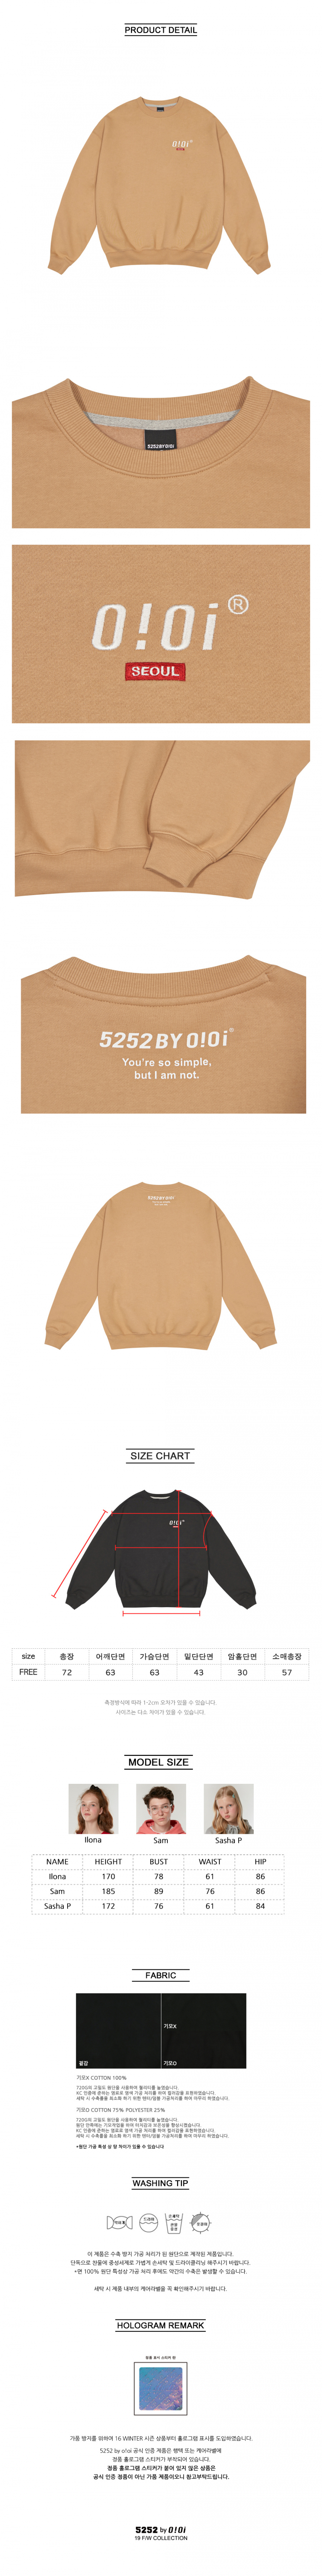 5252 바이 오아이오아이(5252BYOIOI) 2019 SIDE LOGO JUMPER_beige